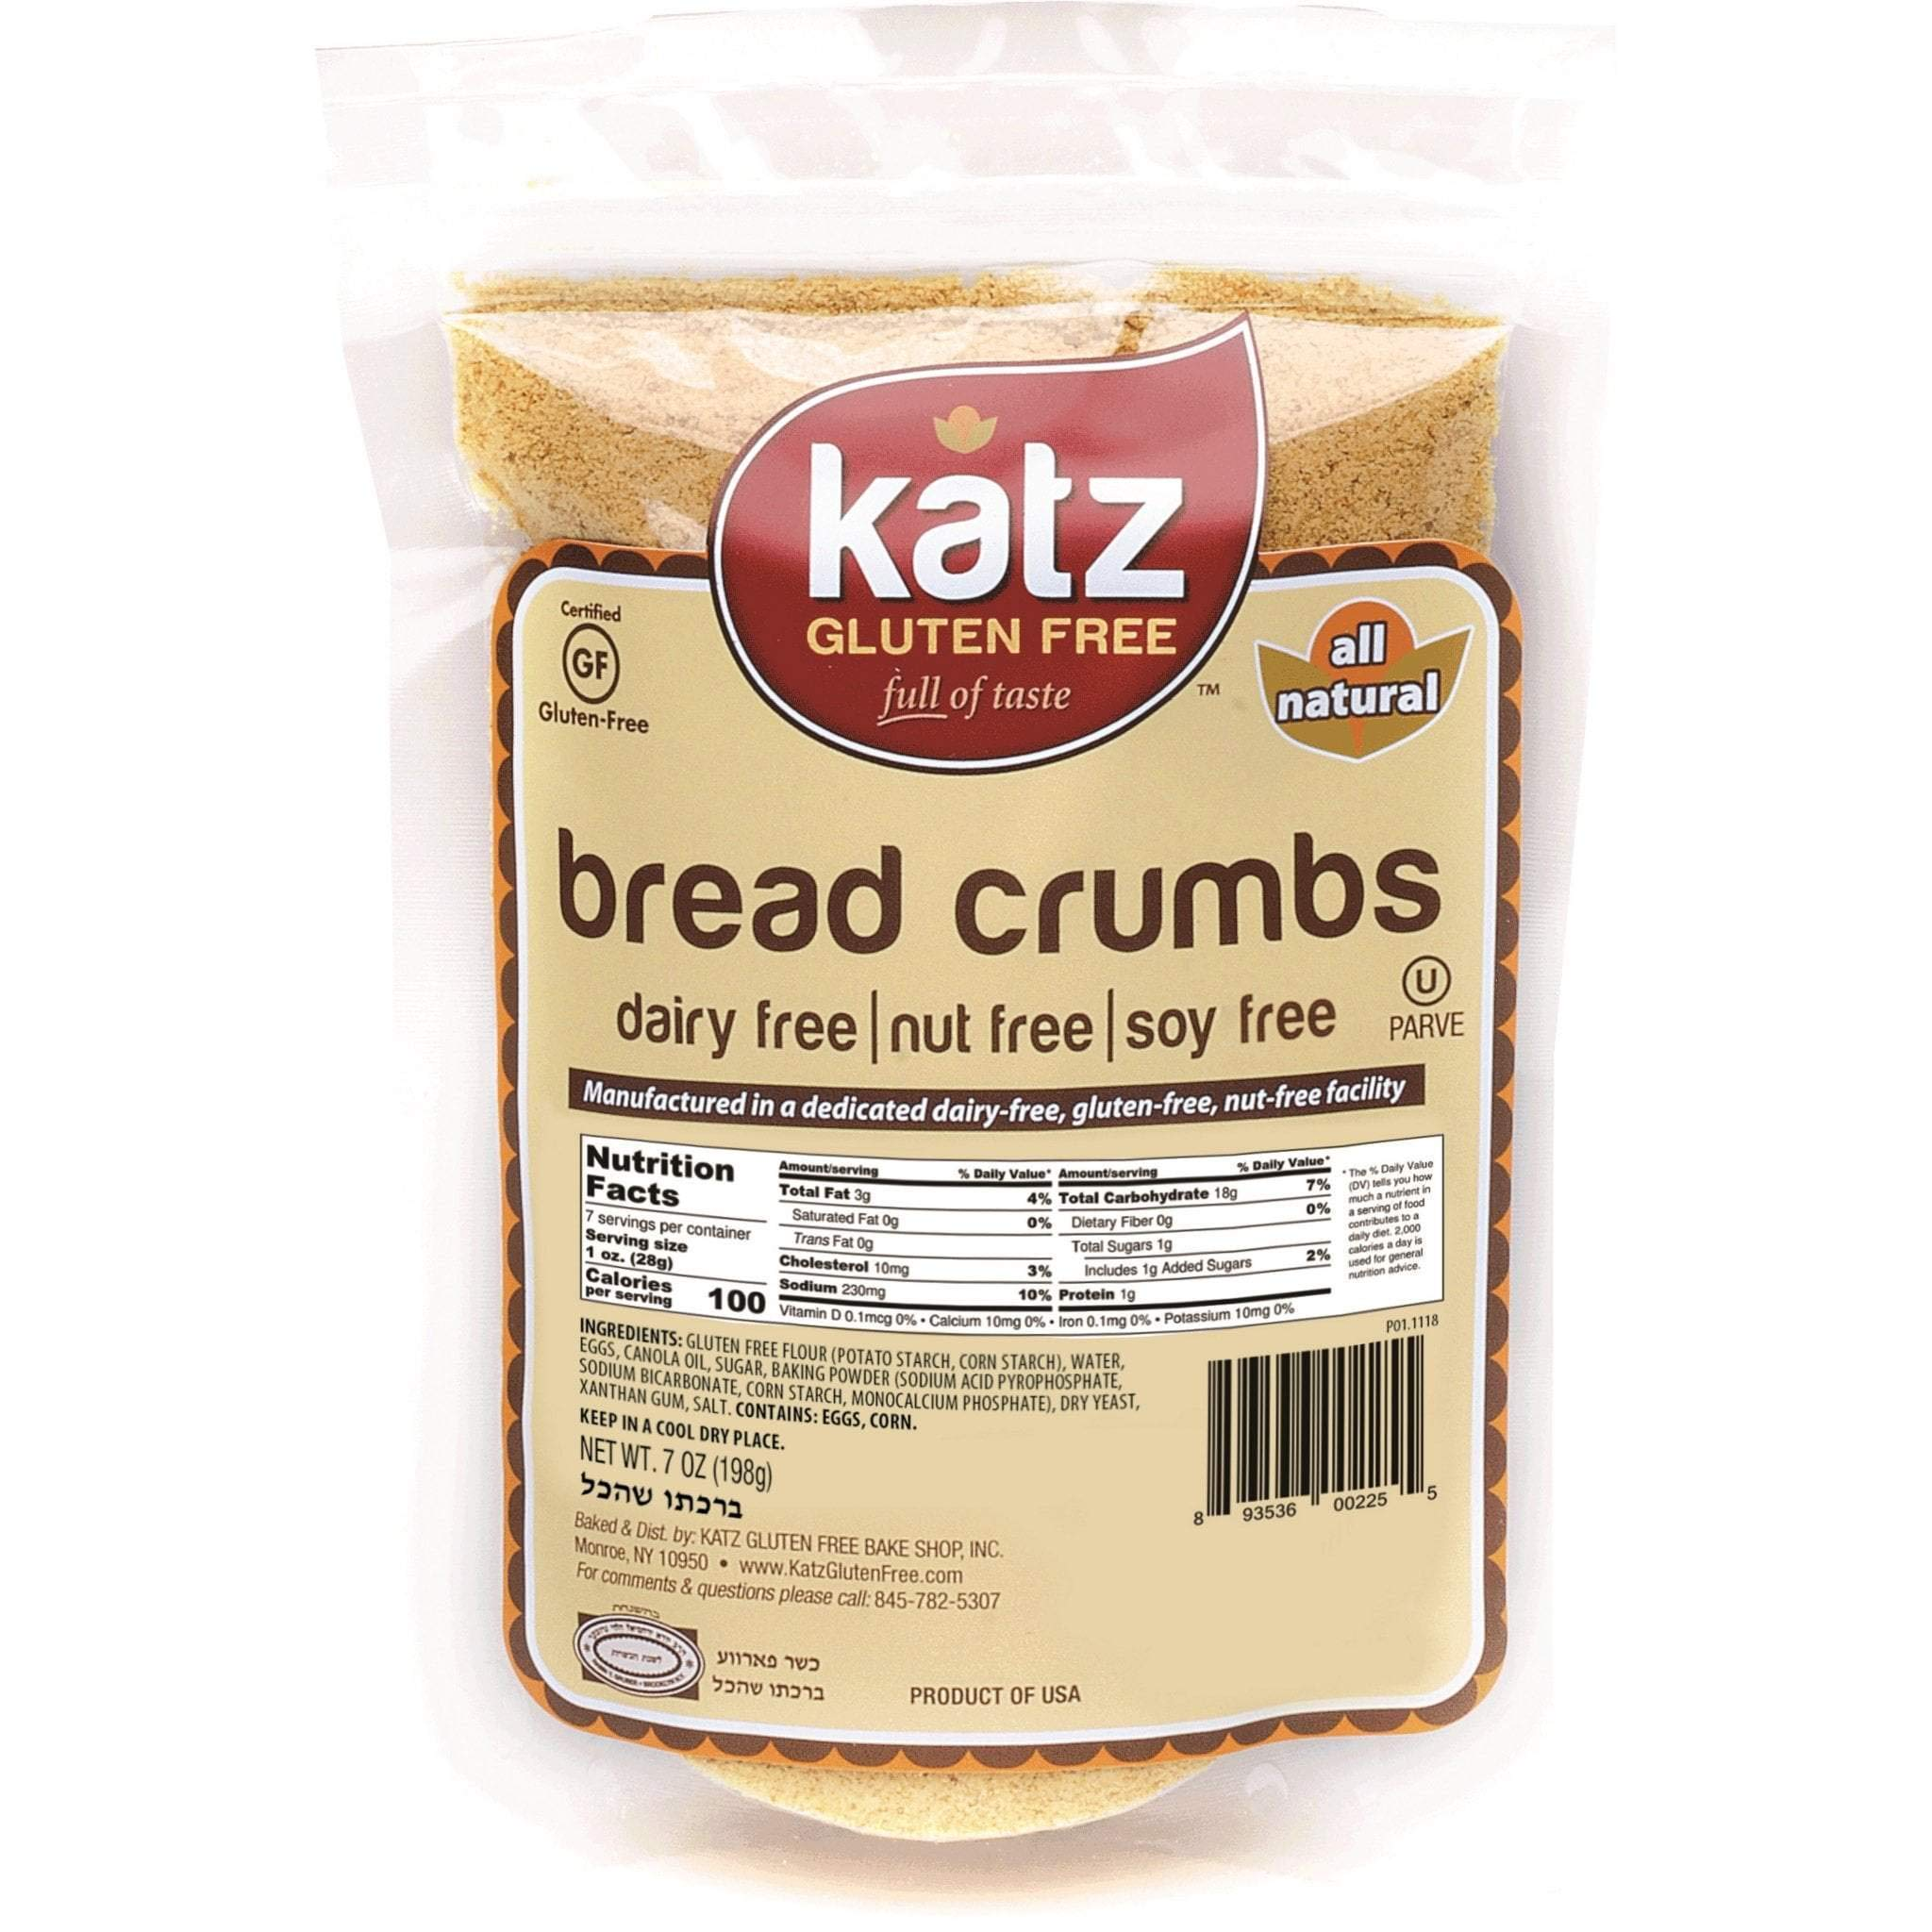 Katz Gluten Free Bread Crumbs | Dairy, Nut, Soy and Gluten Free | Kosher (6 Packs, 7 Ounce Each) by Katz Gluten Free